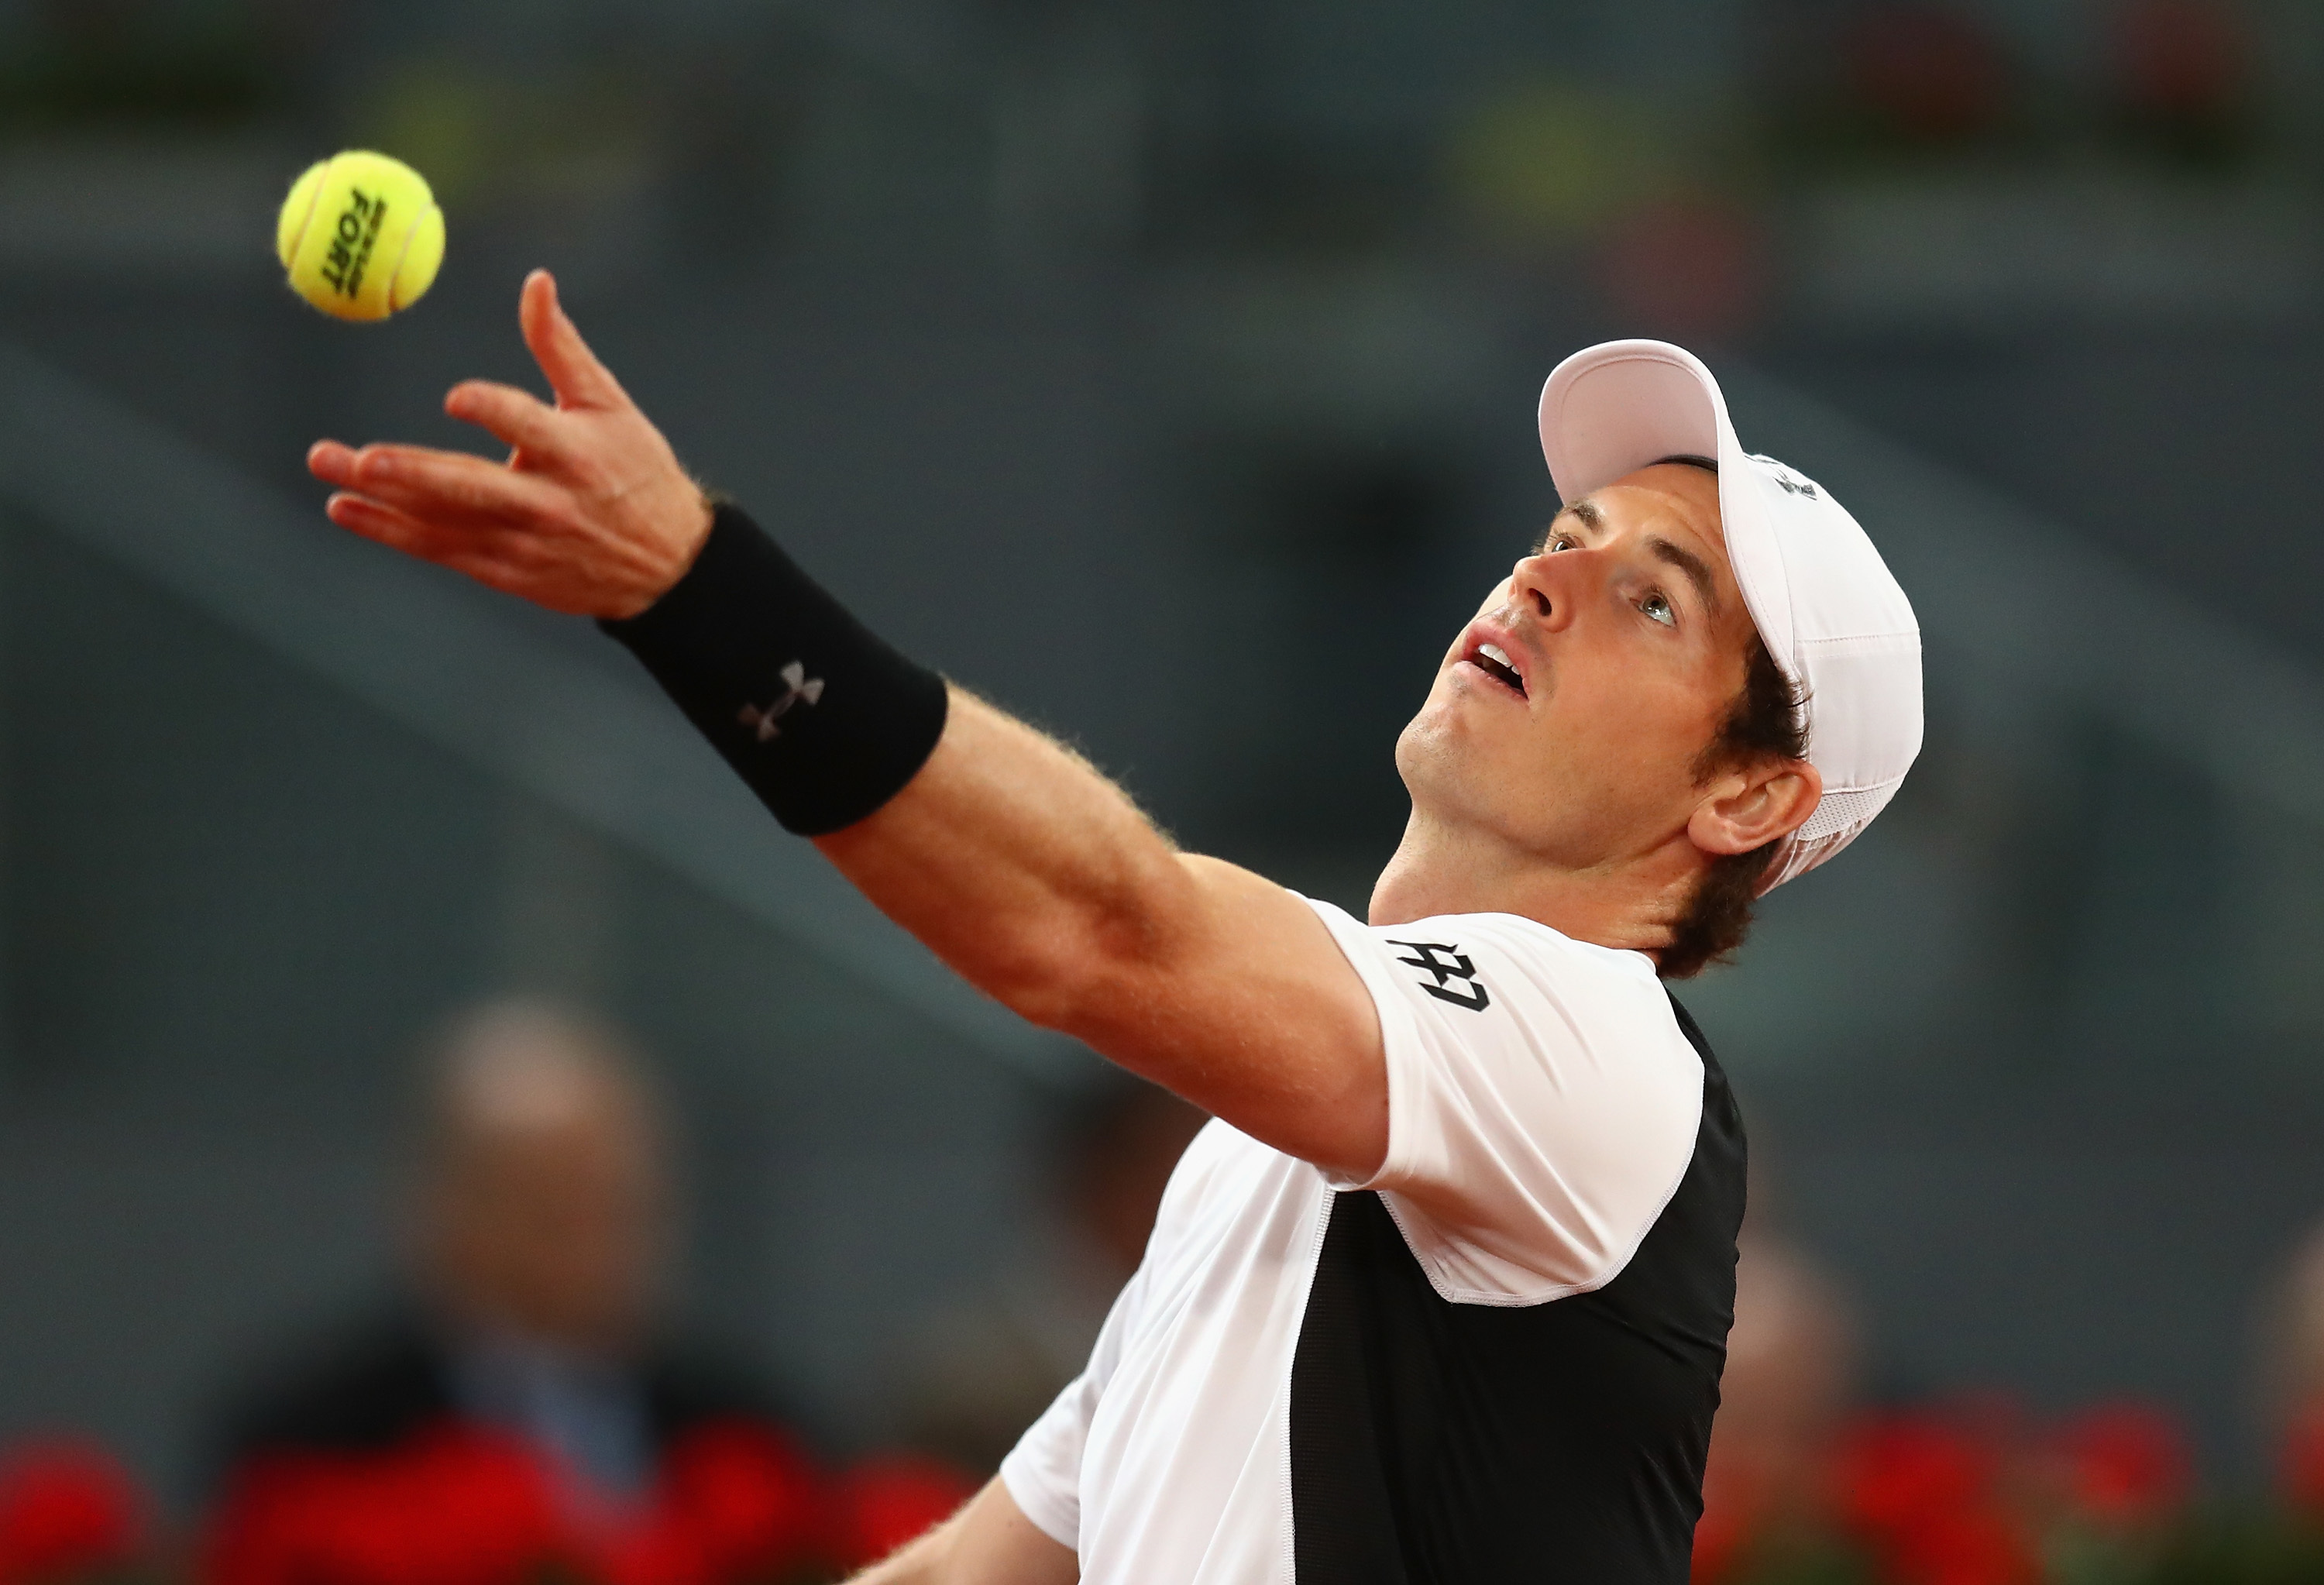 Andy Murray in action against Tomas Berdych.